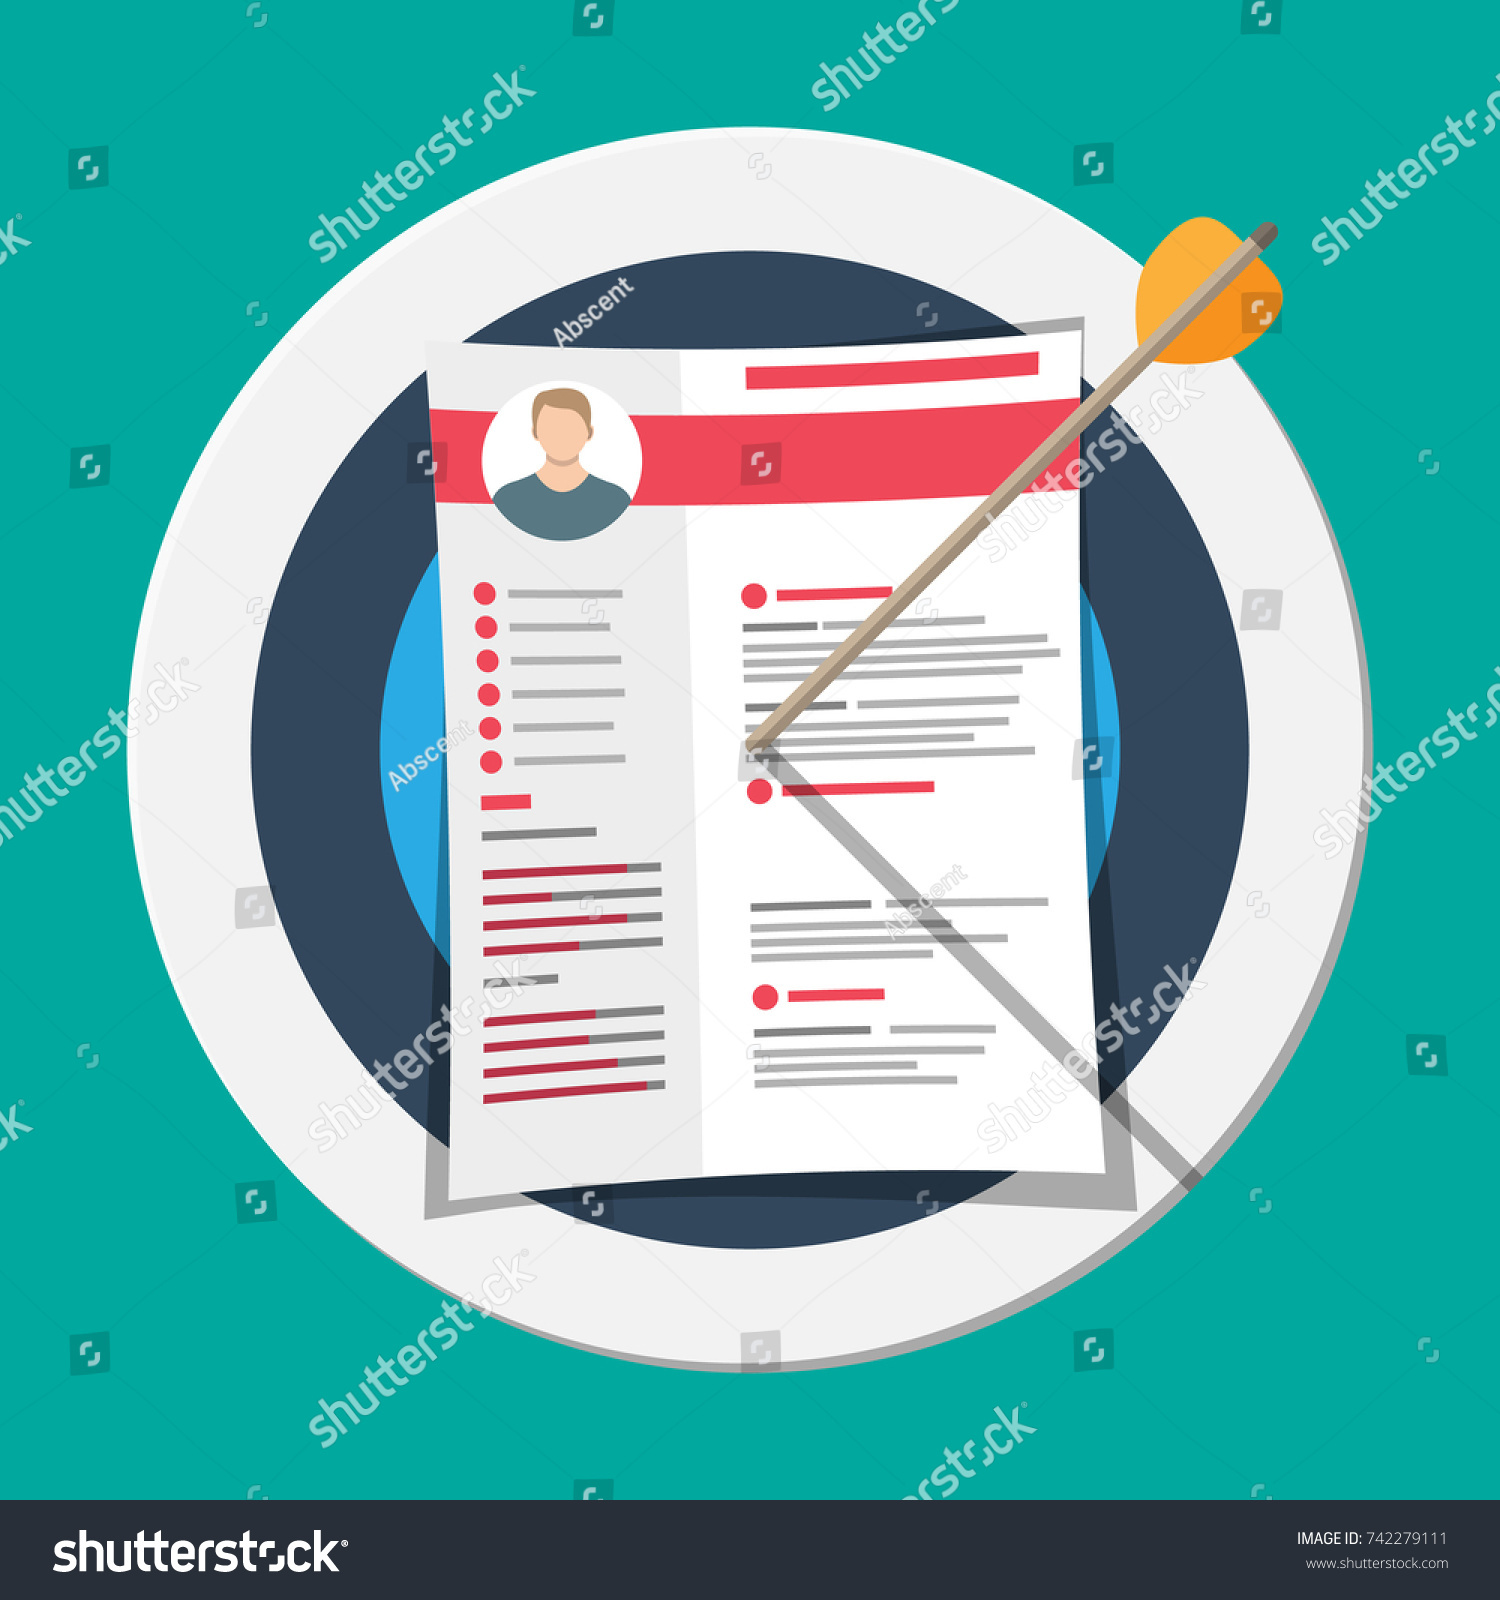 cv resume documents pinned target human stock vector 742279111